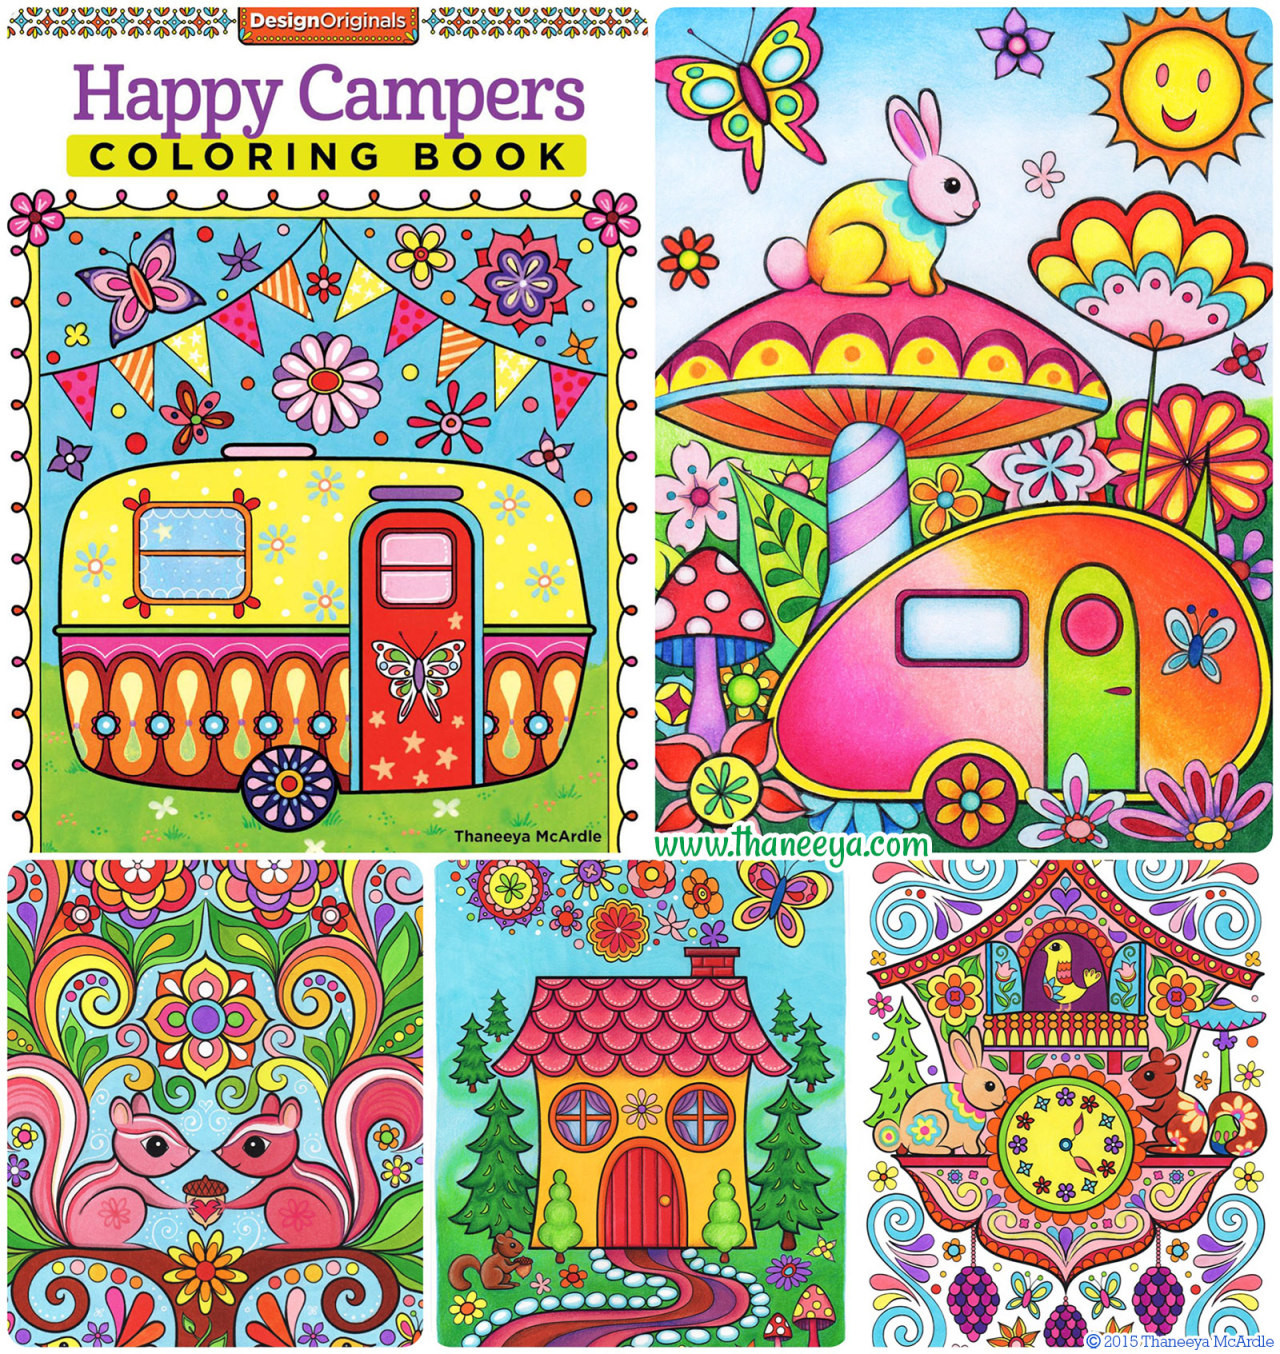 Happy Campers Coloring Book  Thaneeya McArdle s Tumblr • Ooh my Happy Campers Coloring